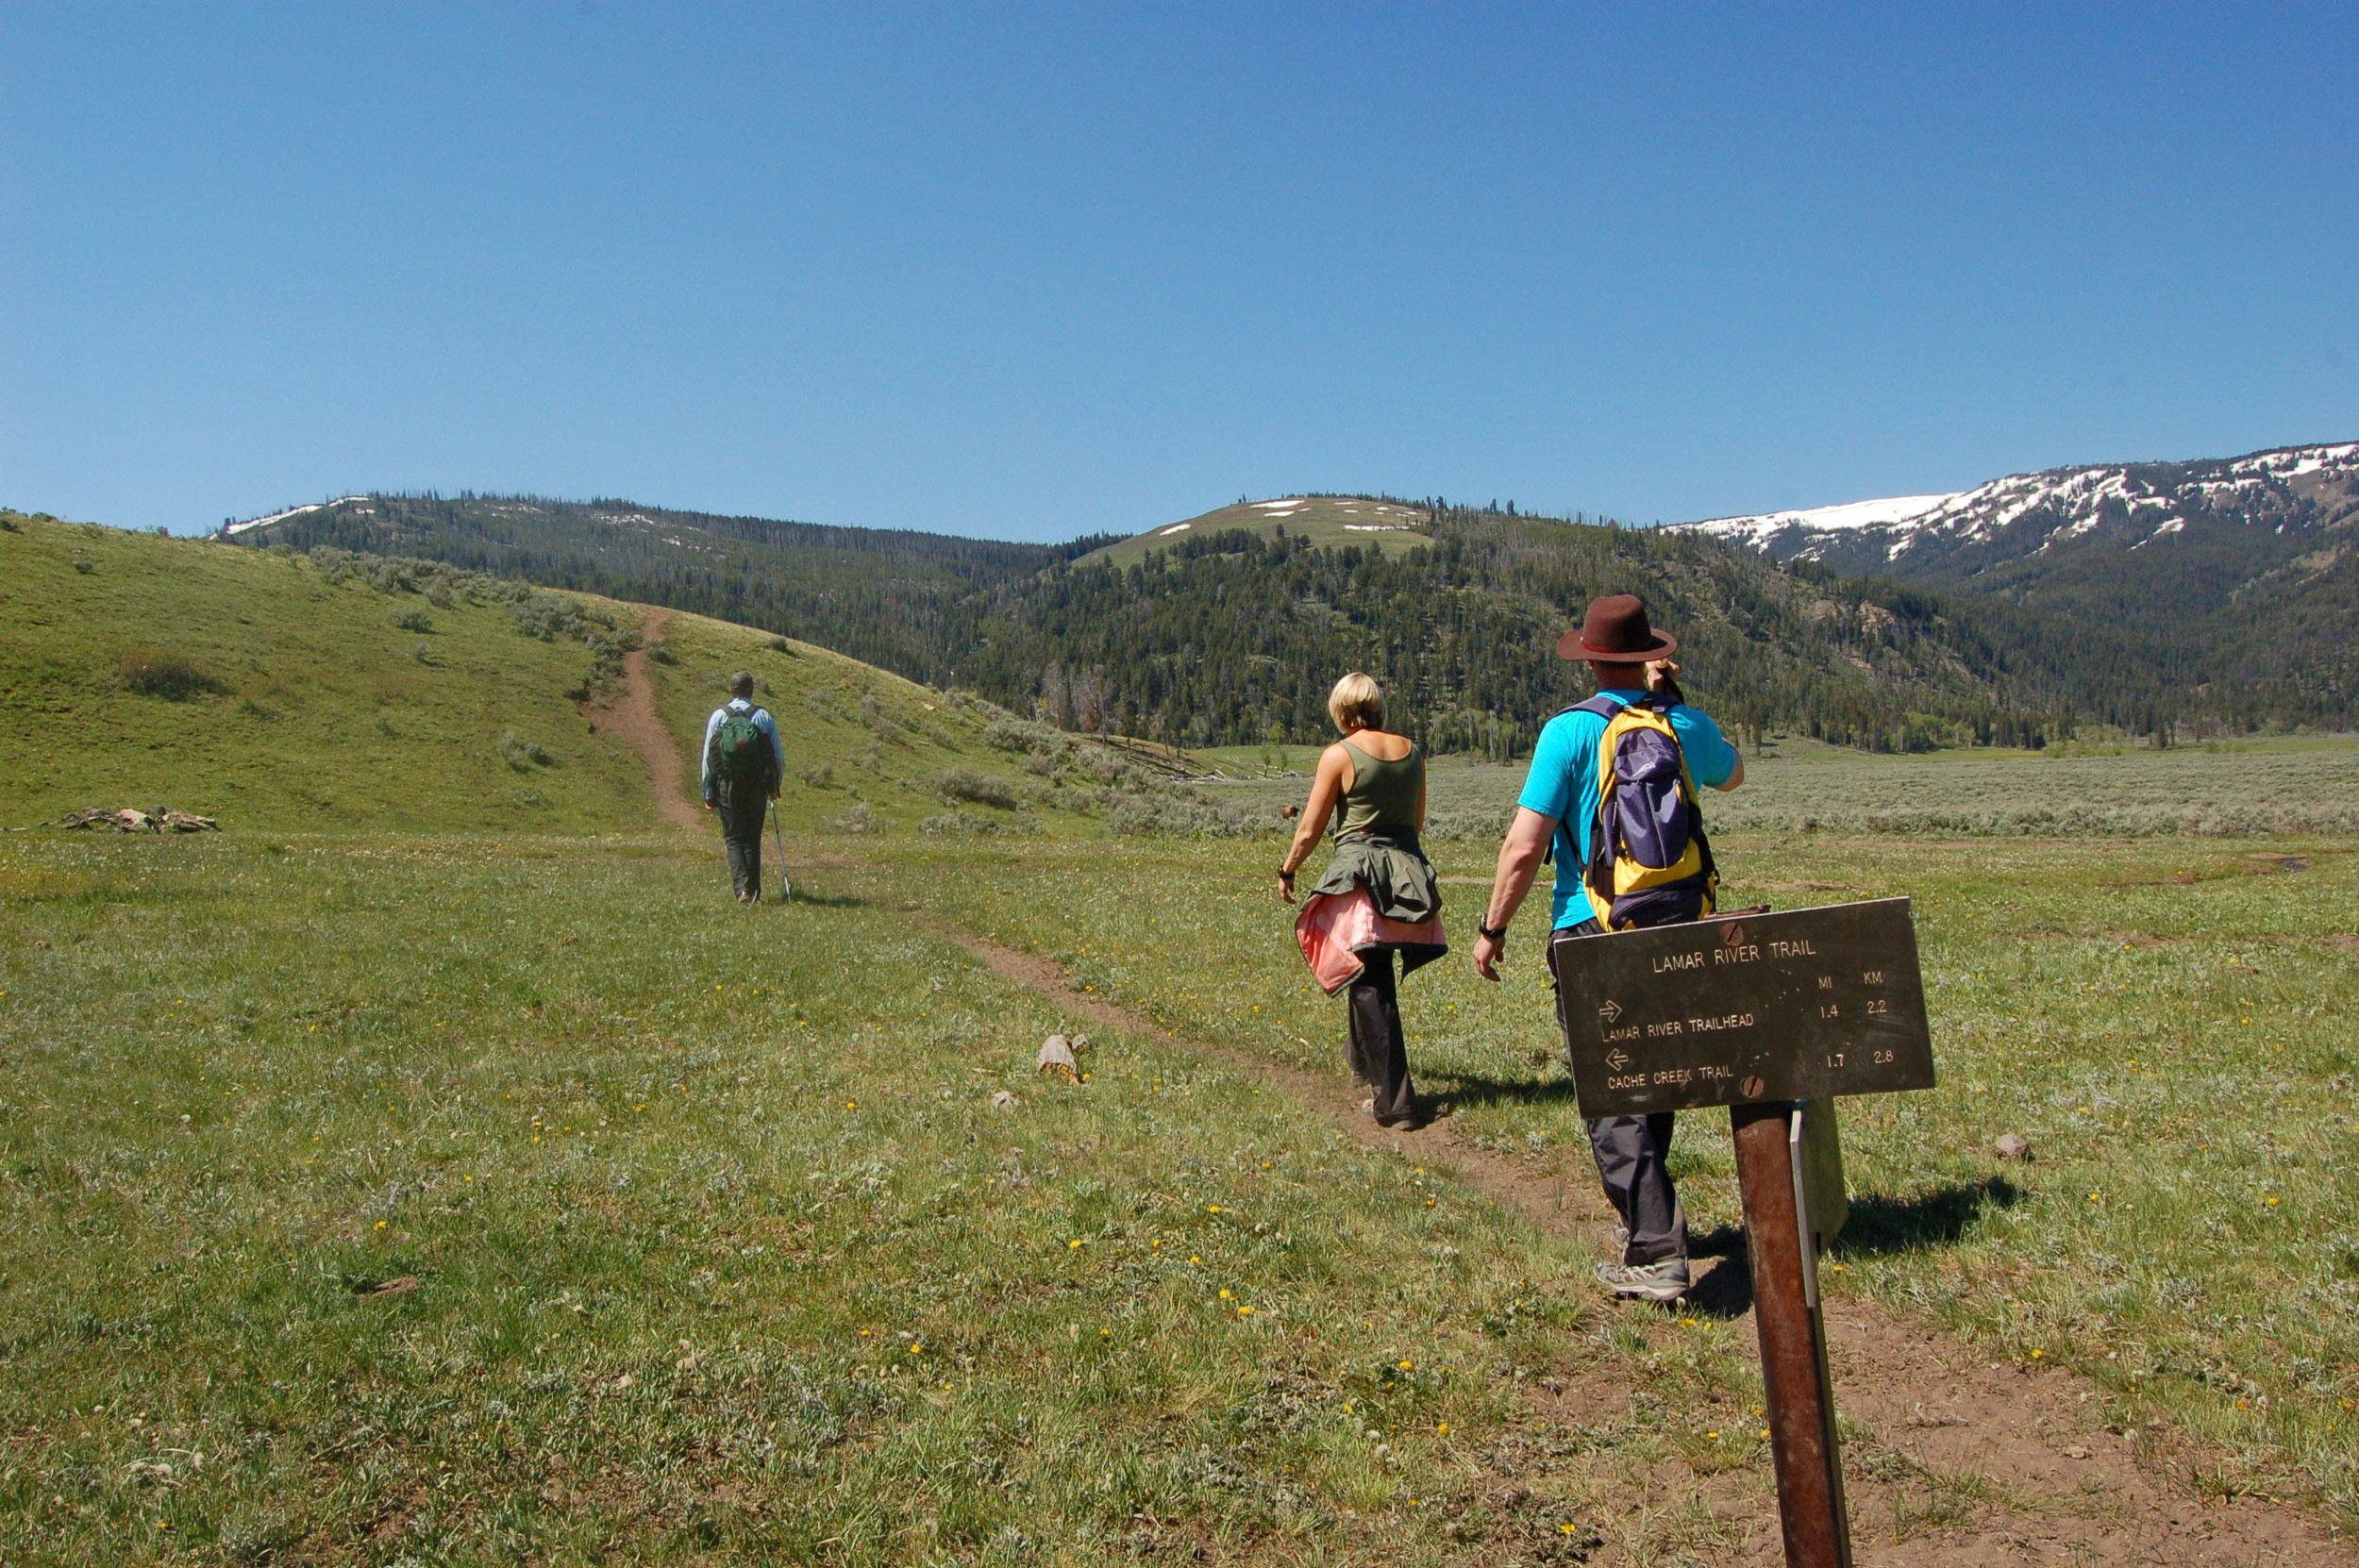 Hiking the Lamar River Trail in Yellowstone National Park.